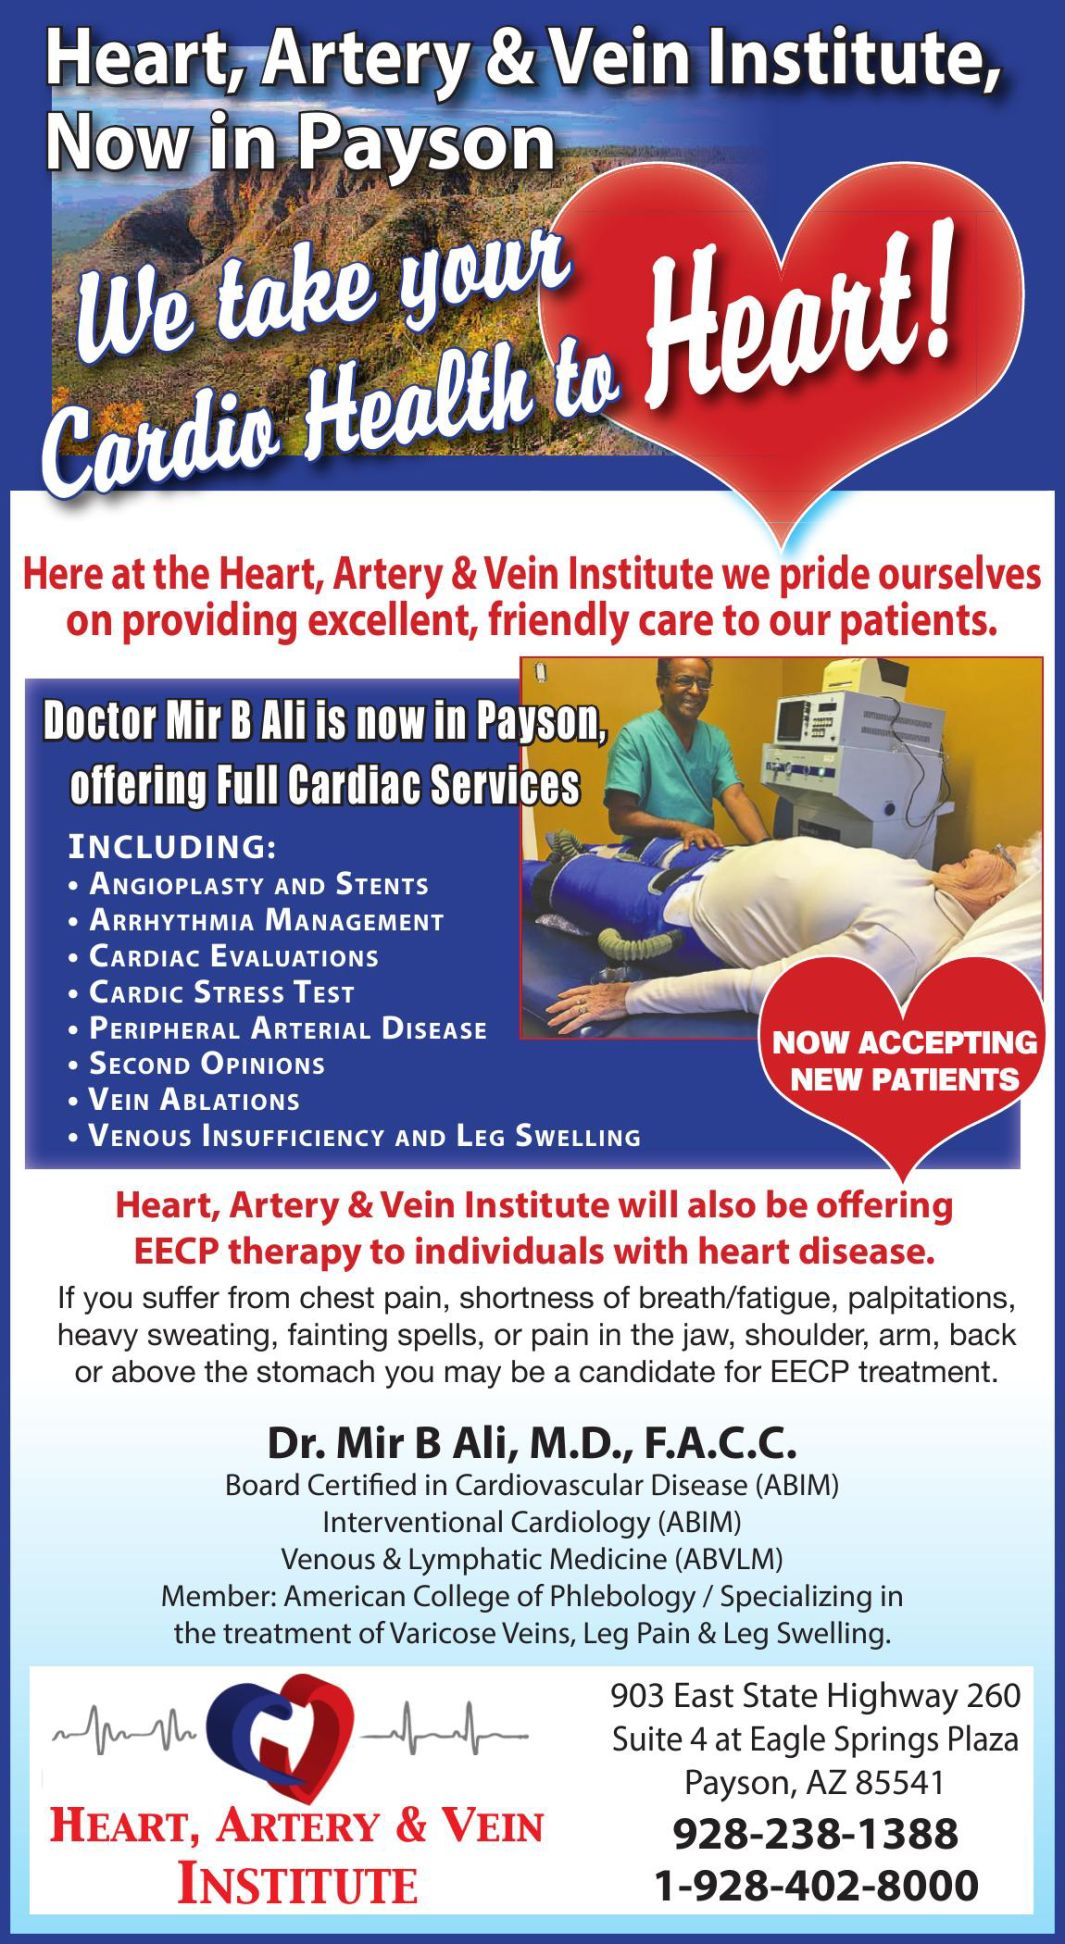 Heart, Artery & Vein Institute,